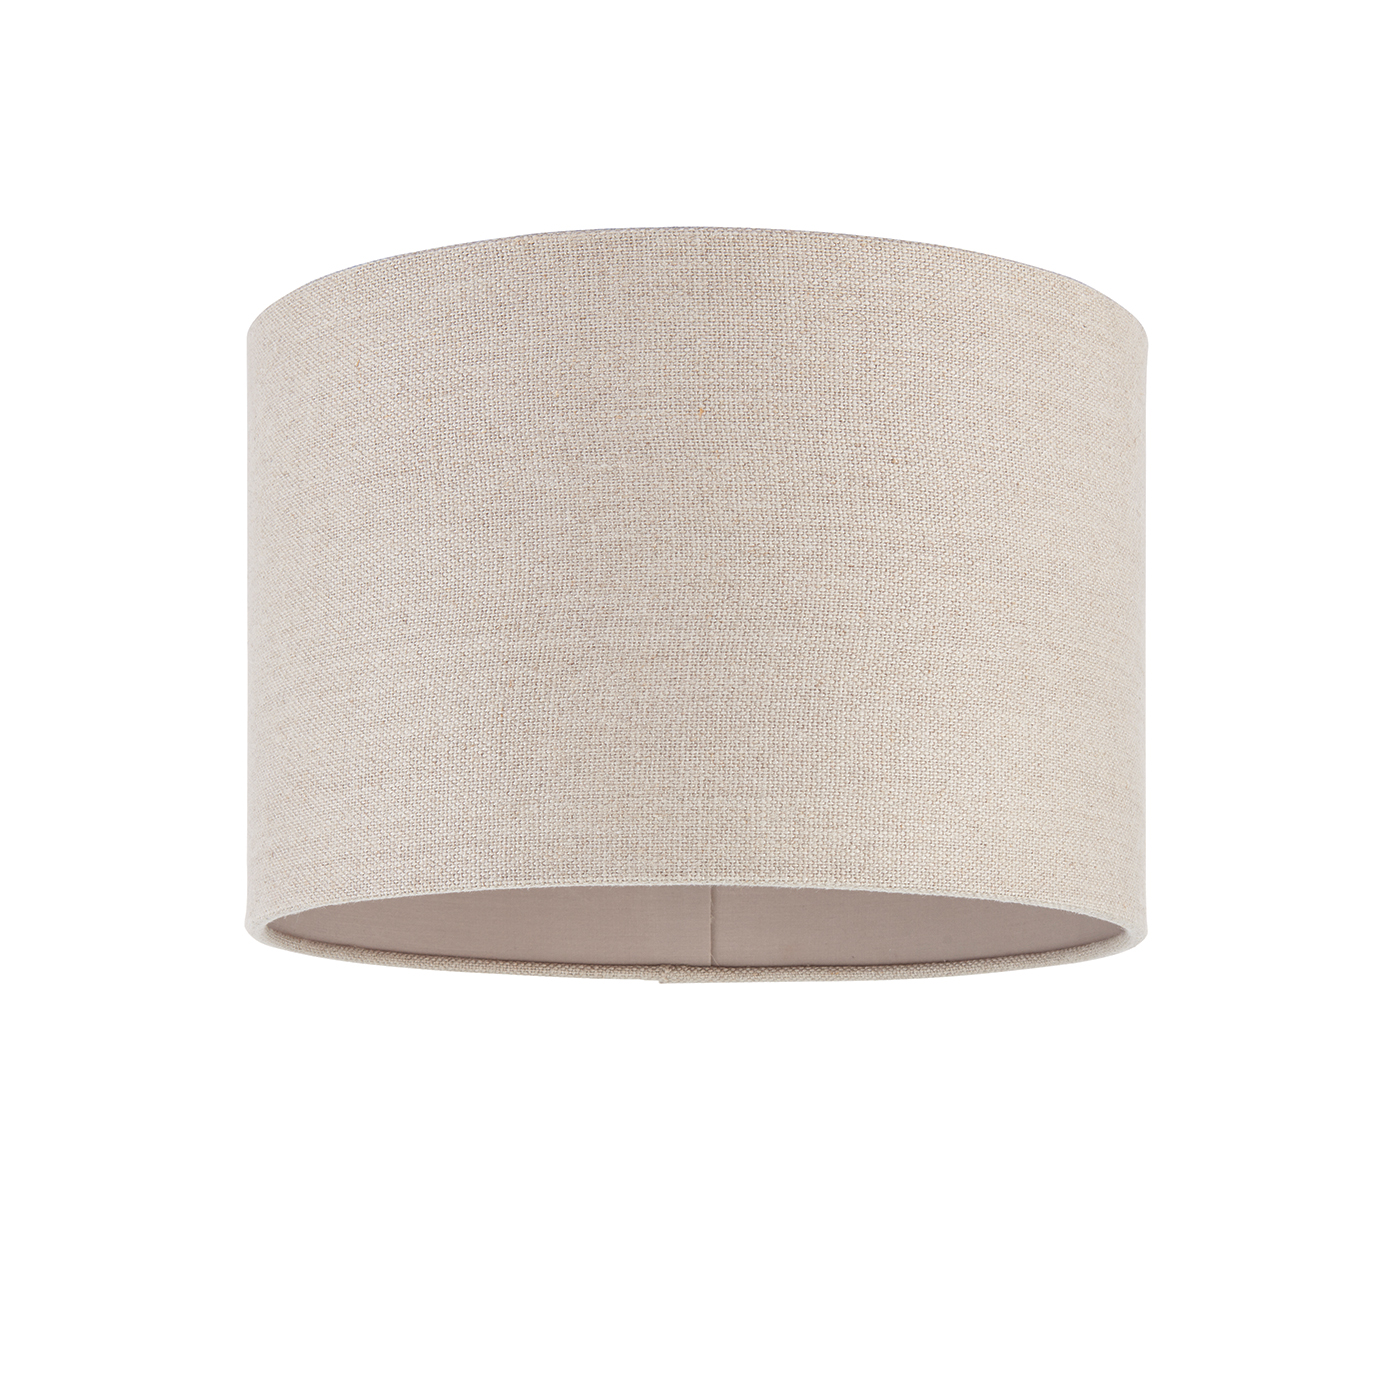 Endon Obi lampshade 12 inch Natural linen polyester cotton 200mm H x 300mm D Thumbnail 1